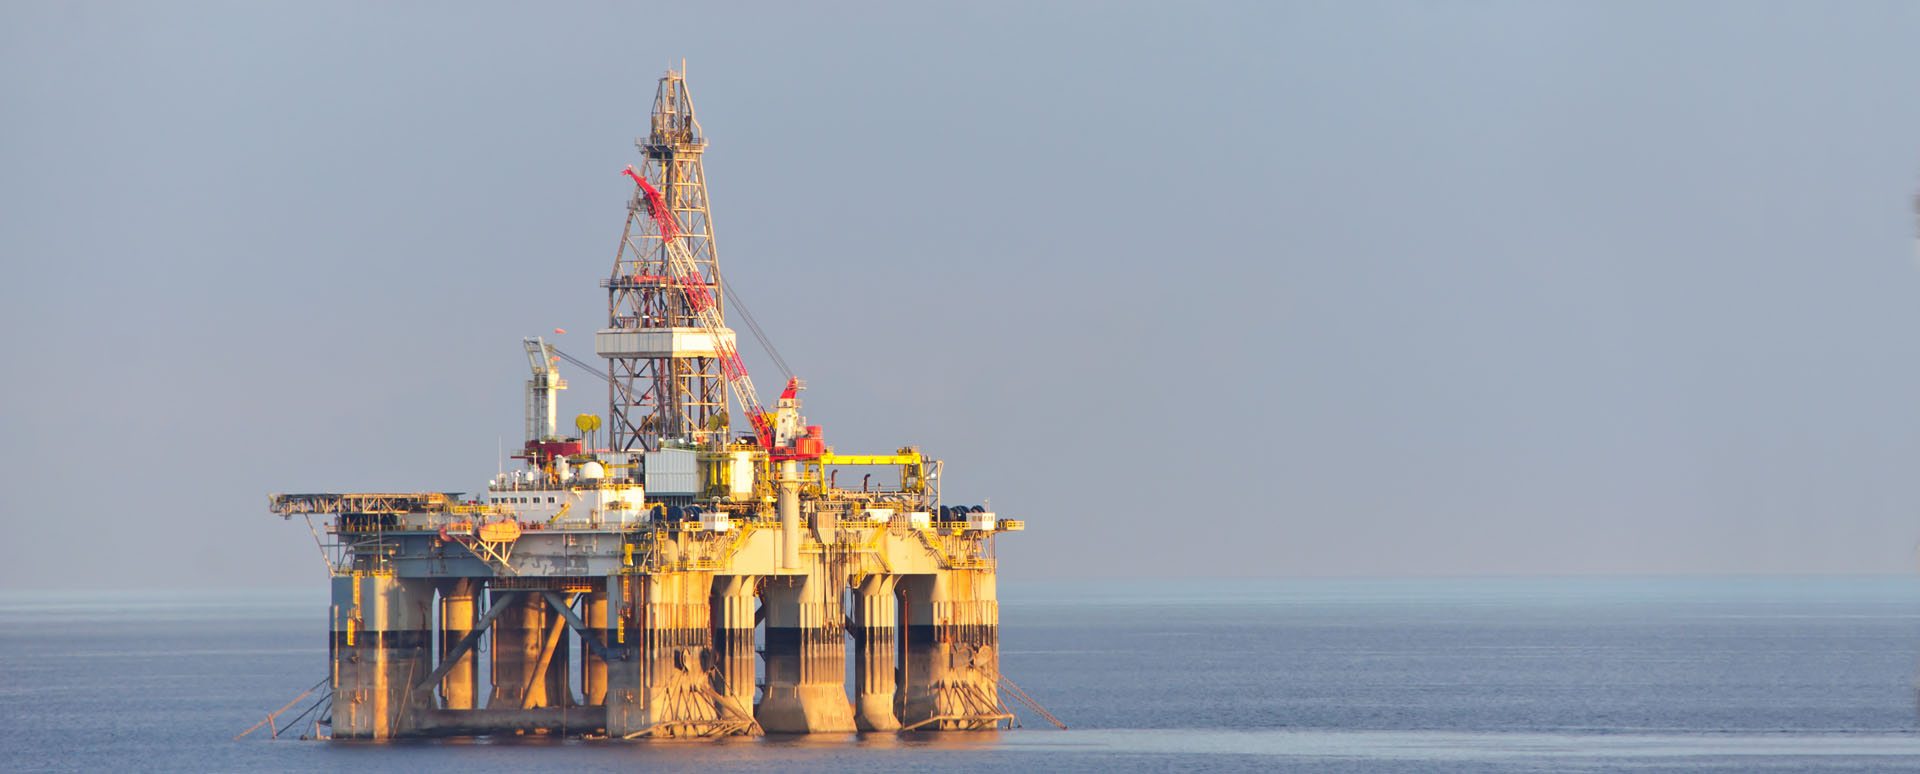 Oil and Gas platform cyprus